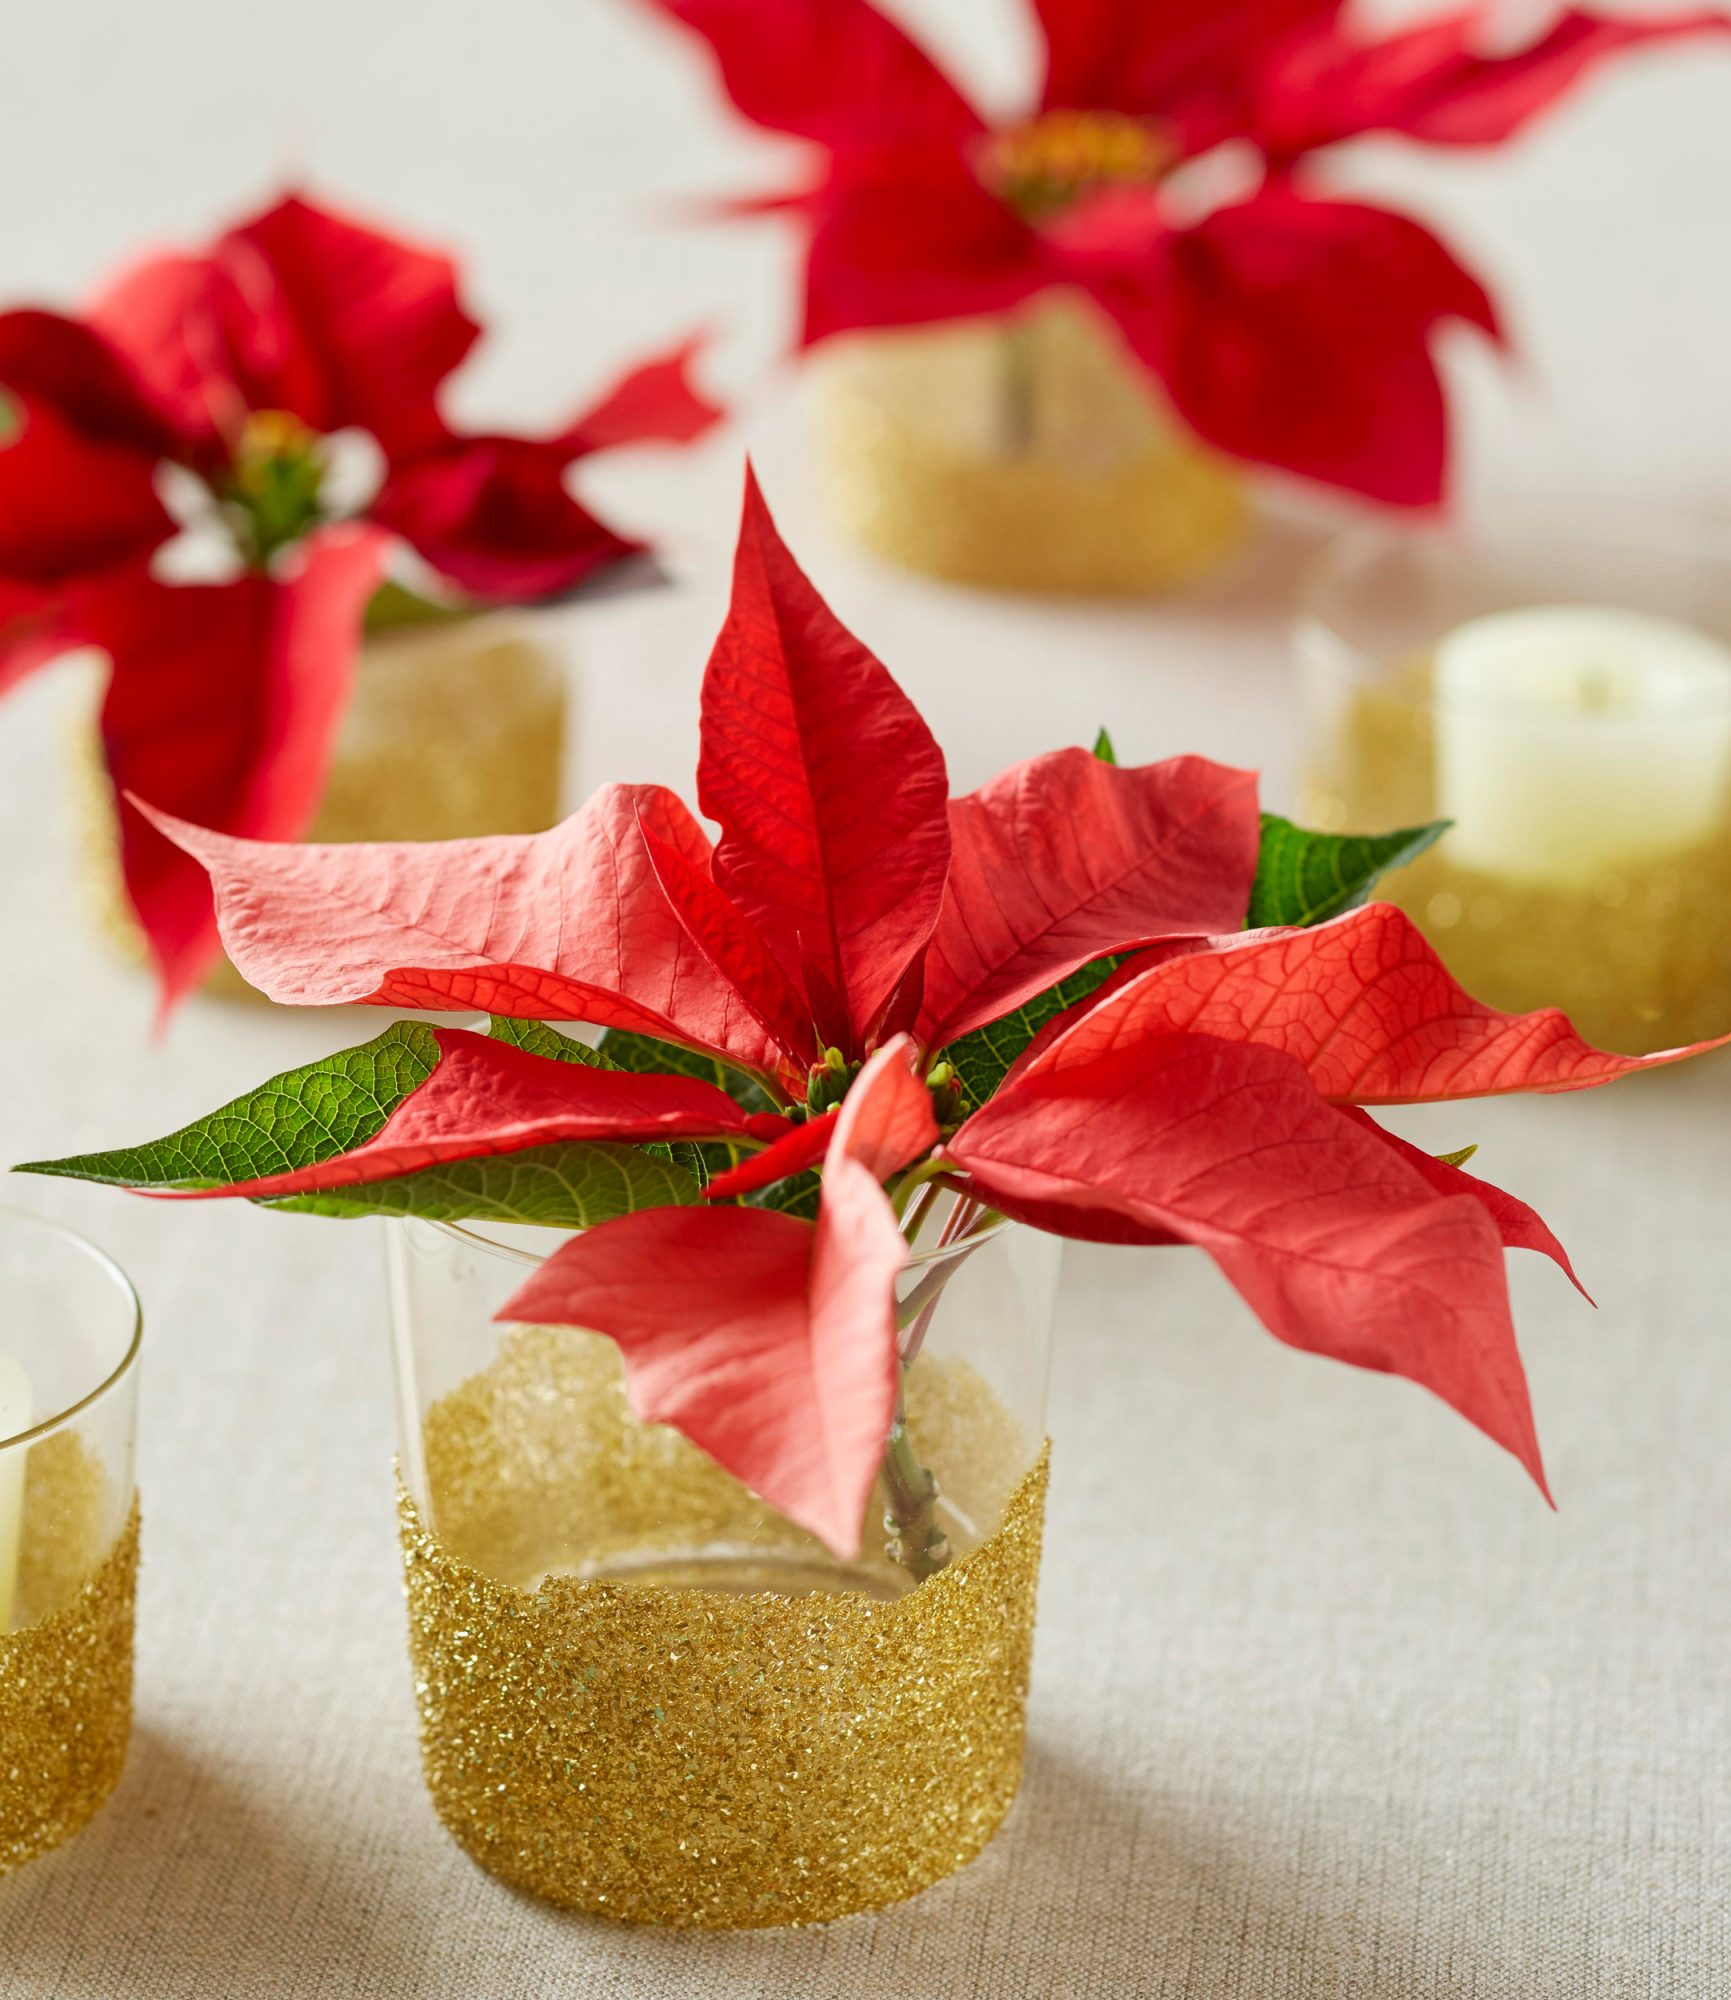 Poinsettias and crafts